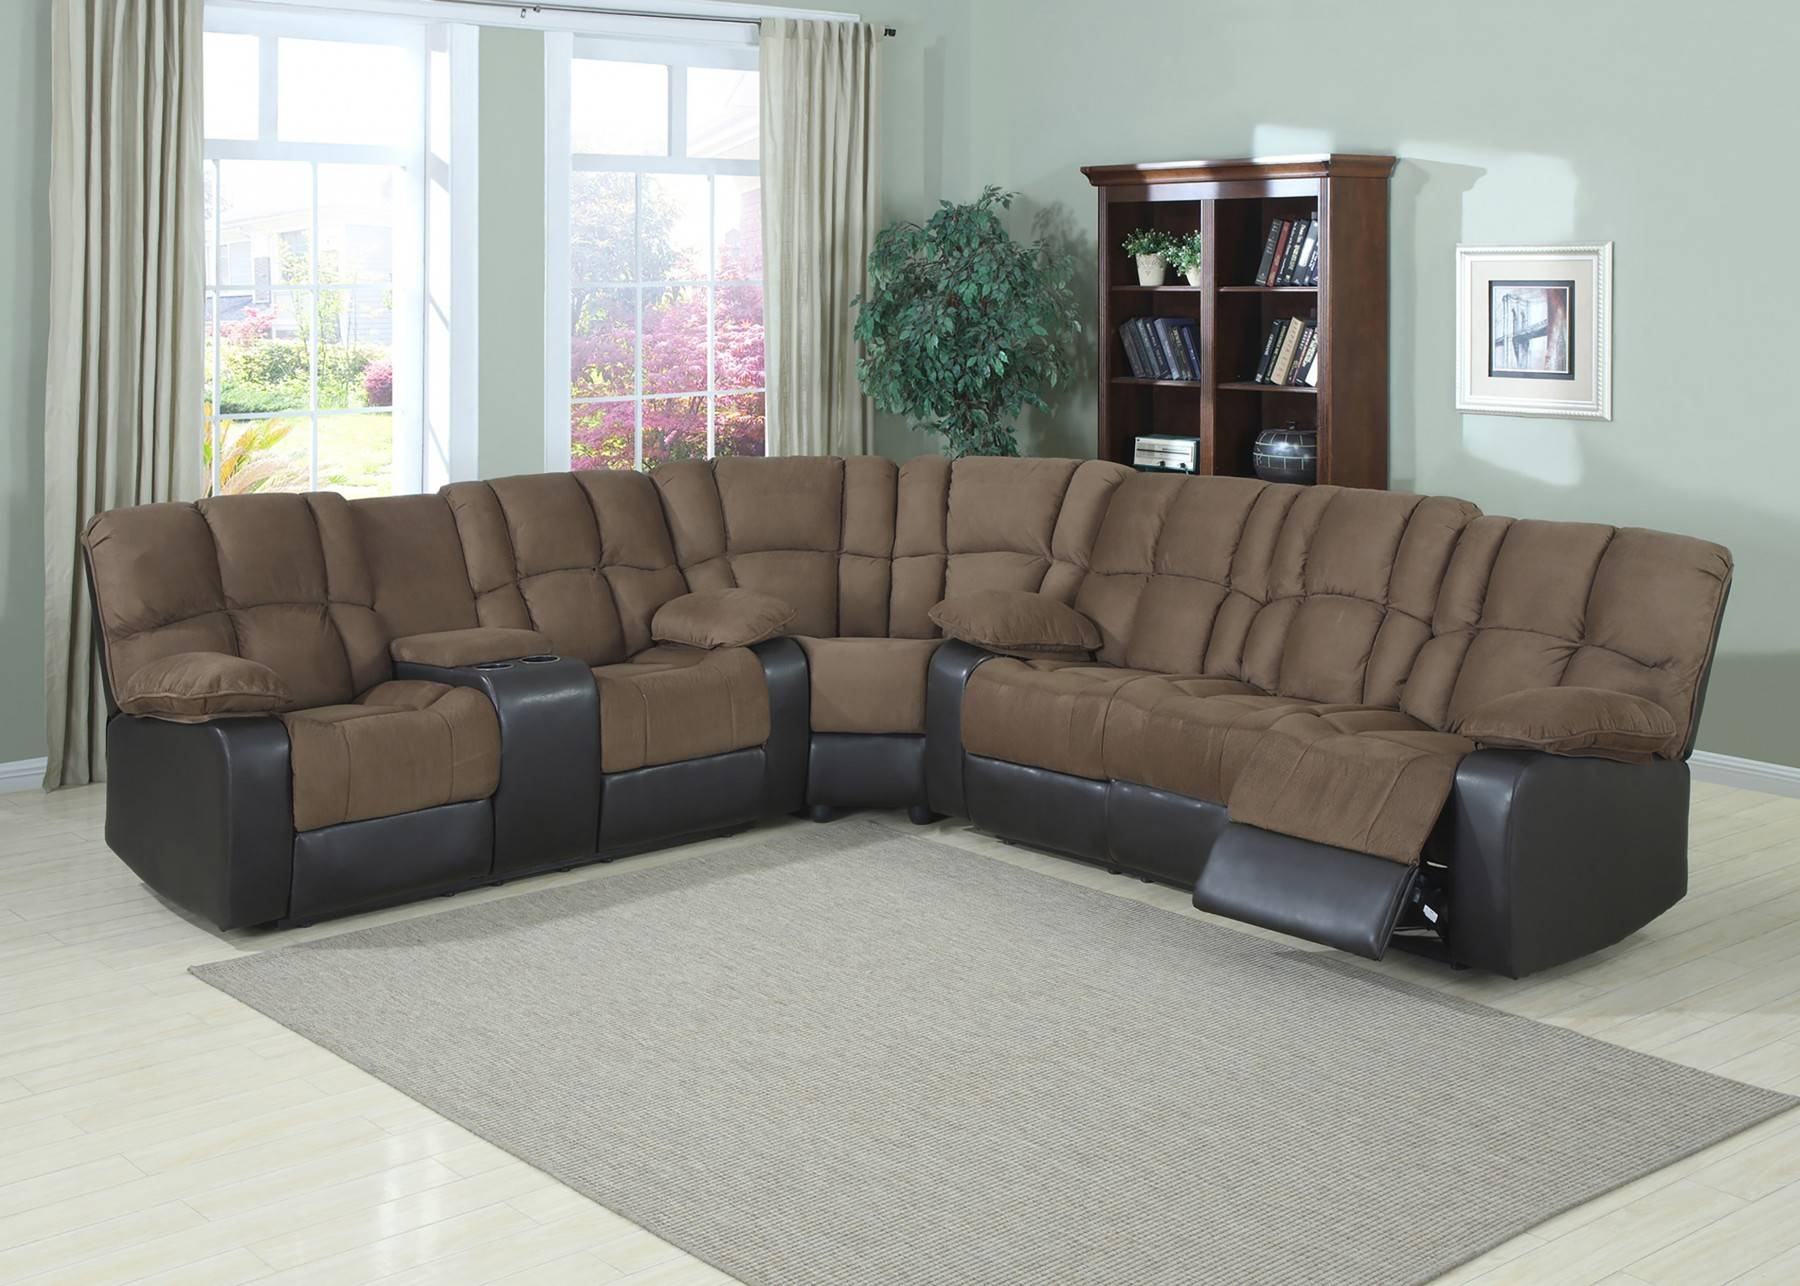 Decor: Artificial Classic Corduroy Sectional Sofa For Unique intended for Extra Wide Sectional Sofas (Image 7 of 30)